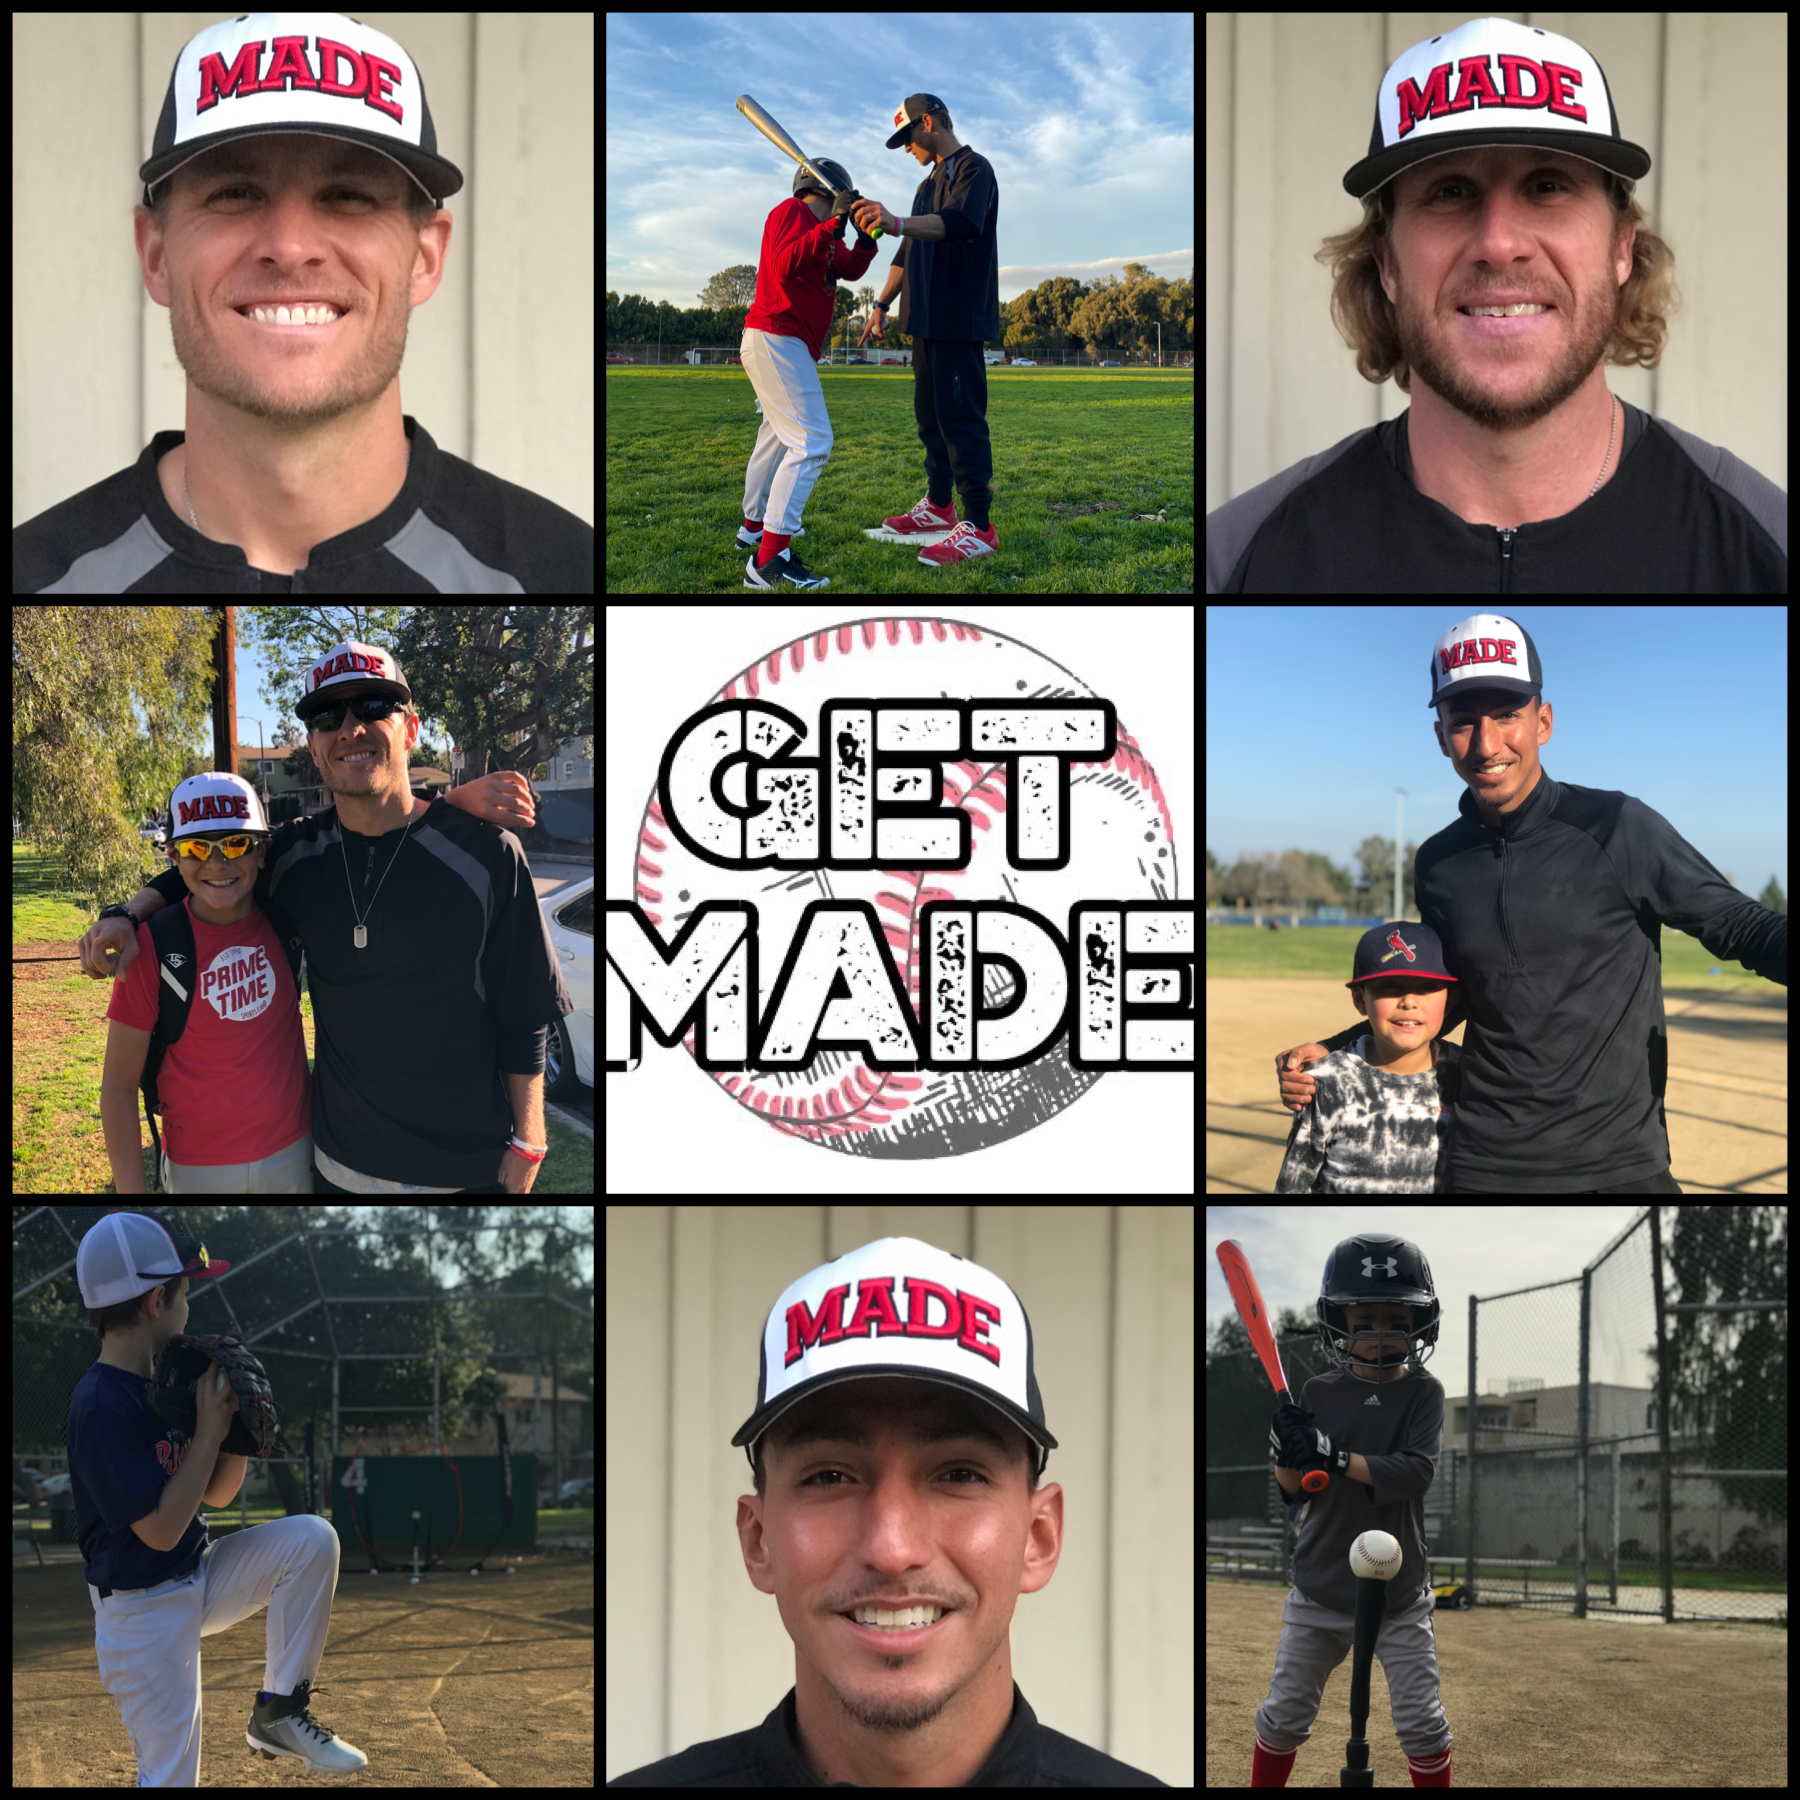 Professional Baseball Coaches in Los Angeles